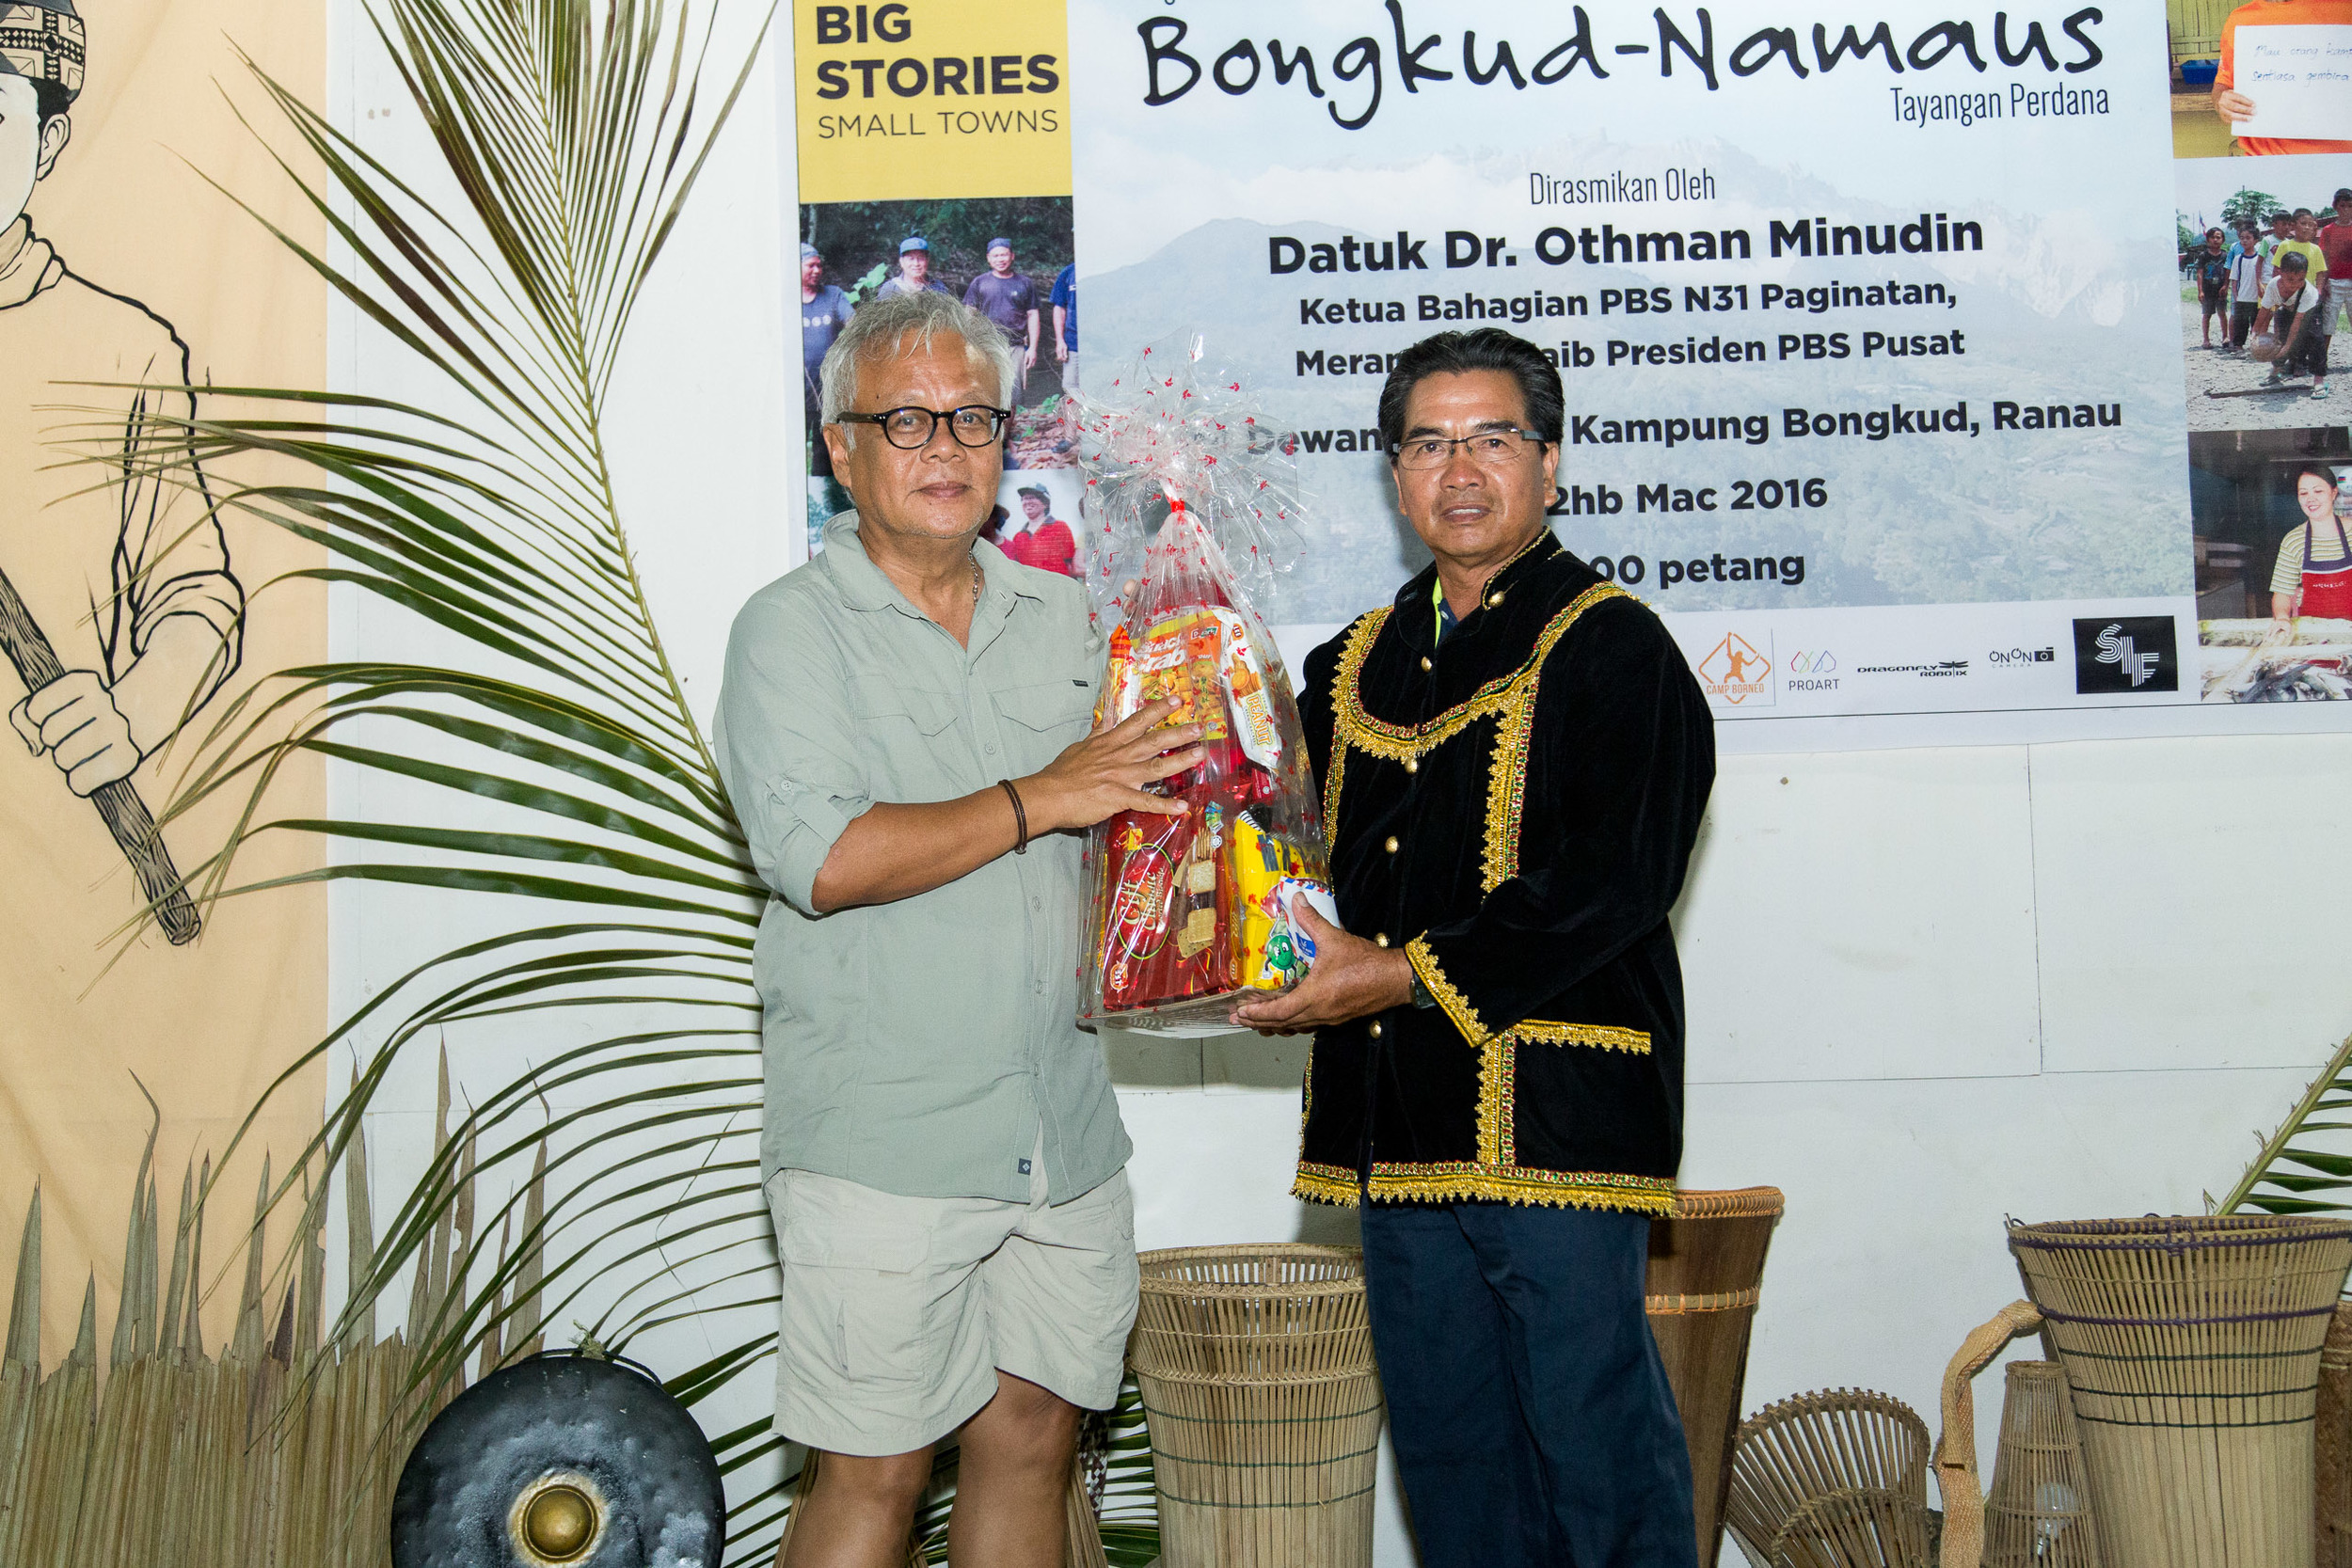 Kampung Bongkud Village Chief and community filmmaker receiving an award from Datuk Dr. Johan Arriffin Samad. Picture by Jeremiah Sebastian